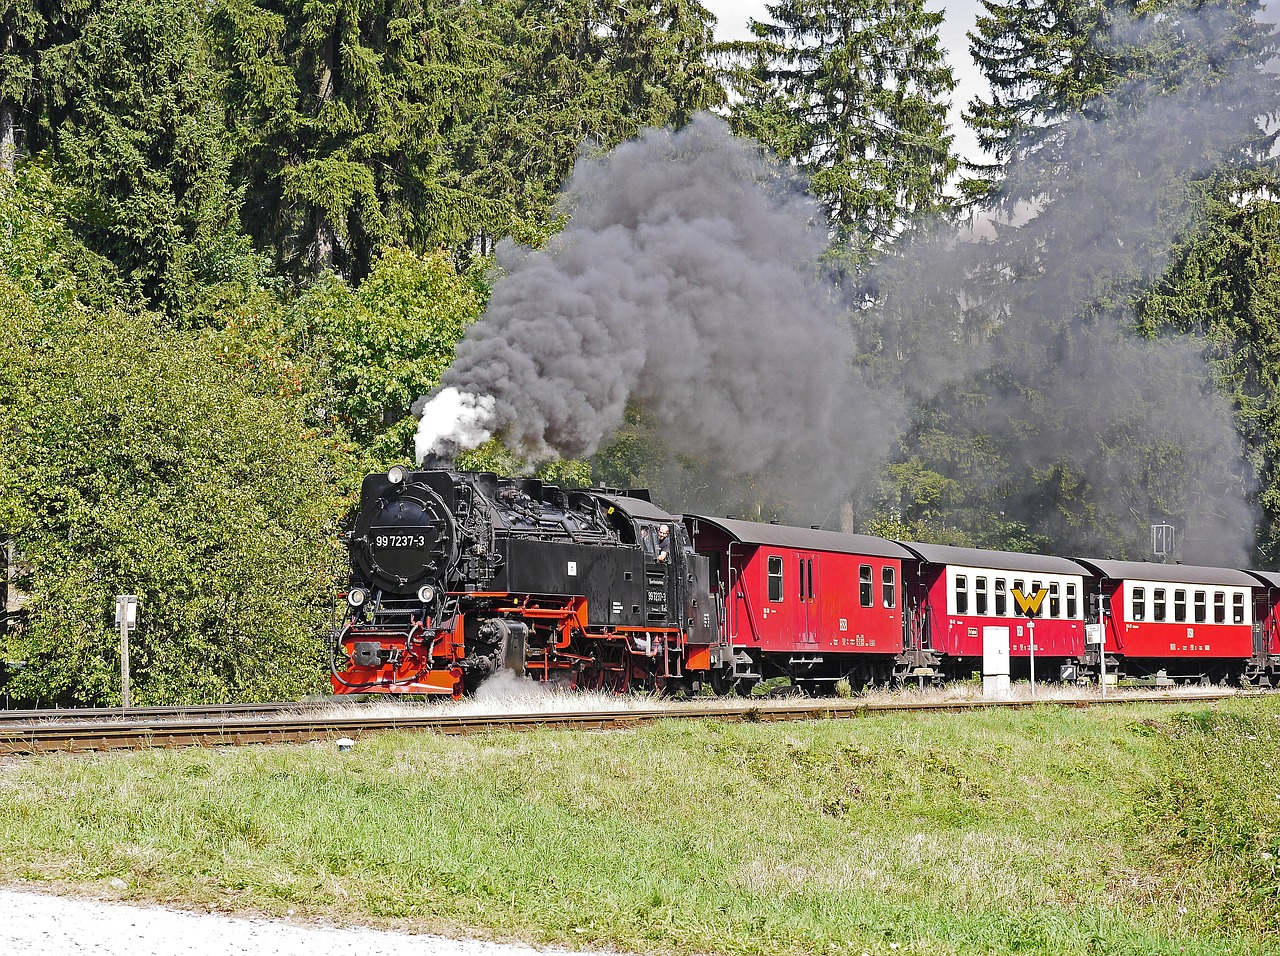 steam locomotive locomotive of chunks of brocken railway free photo